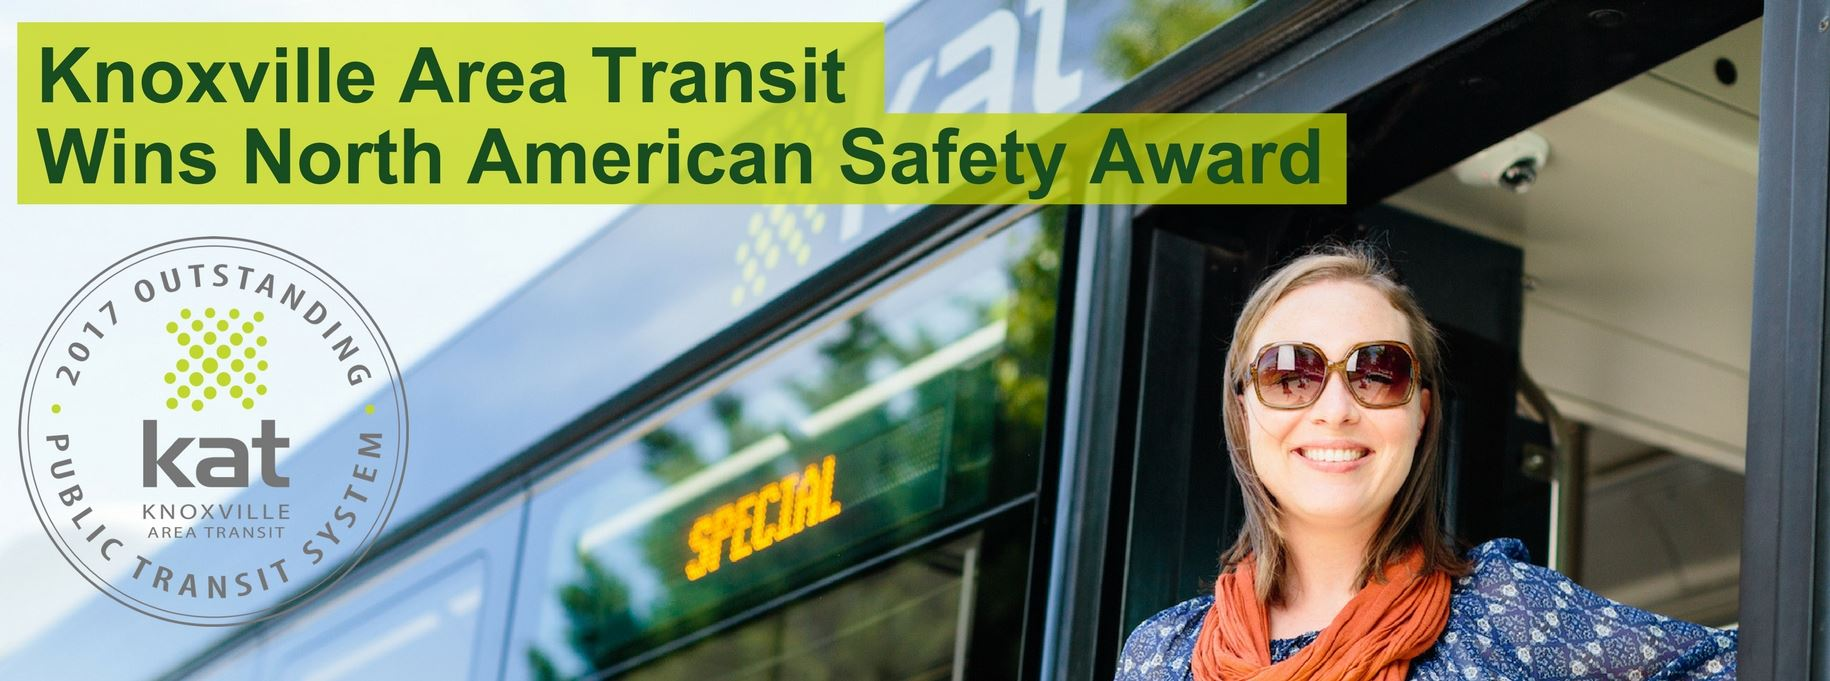 Knoxville Area Transit wins North American Safety Award